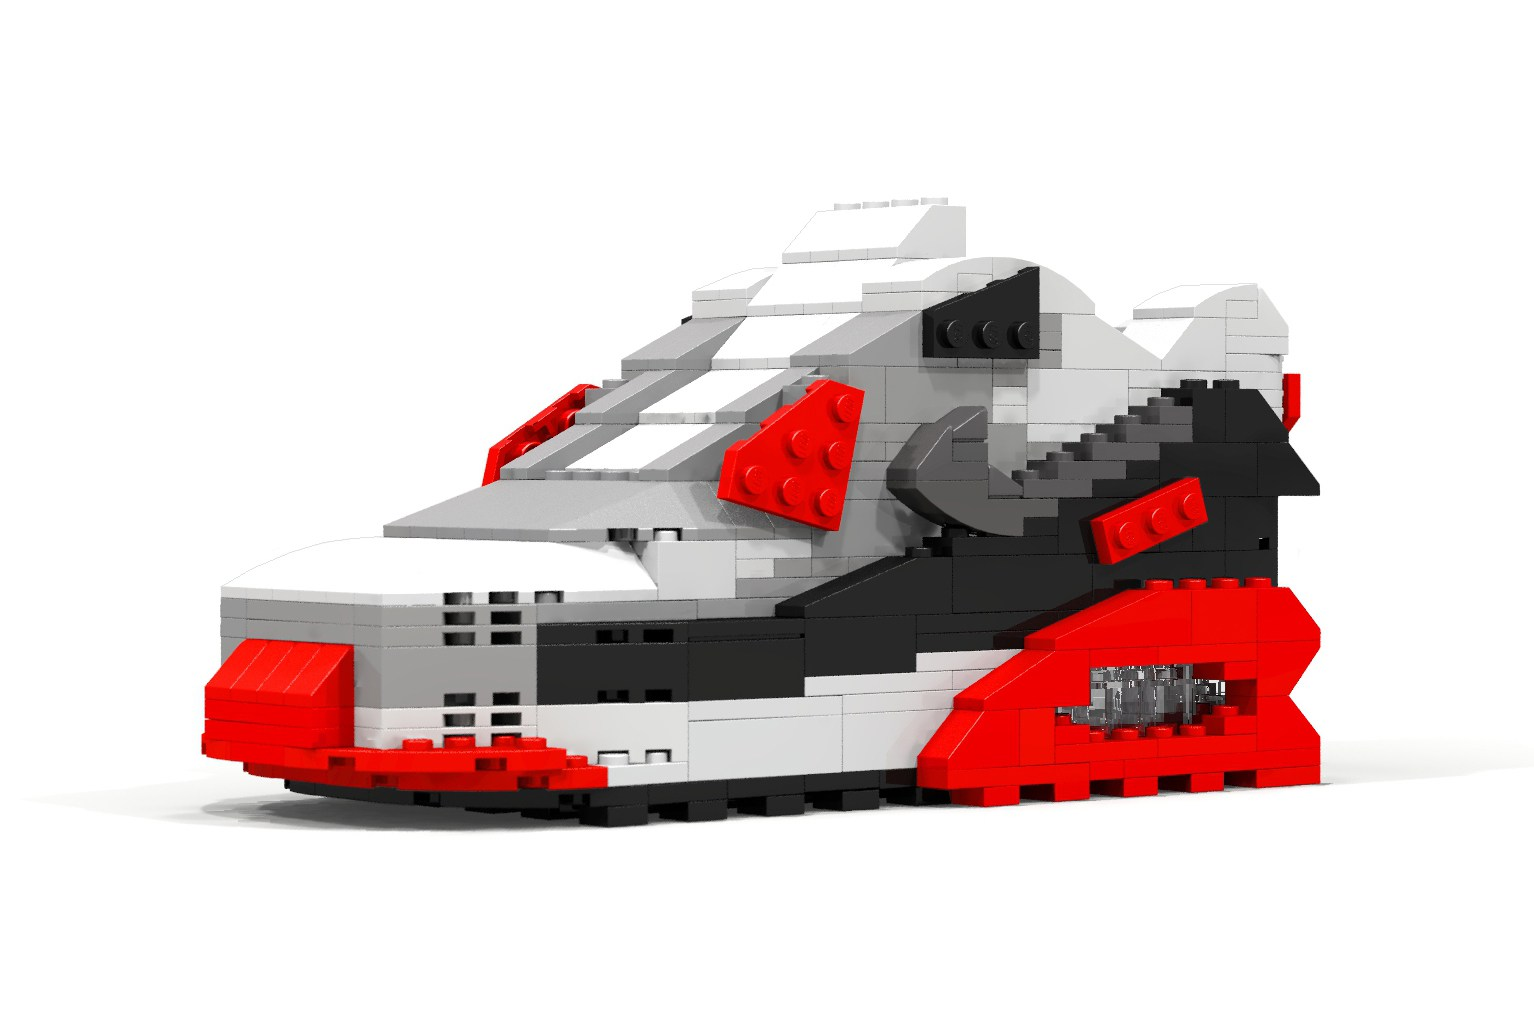 nikes-air-max-90-infrared-gets-remade-in-lego-3